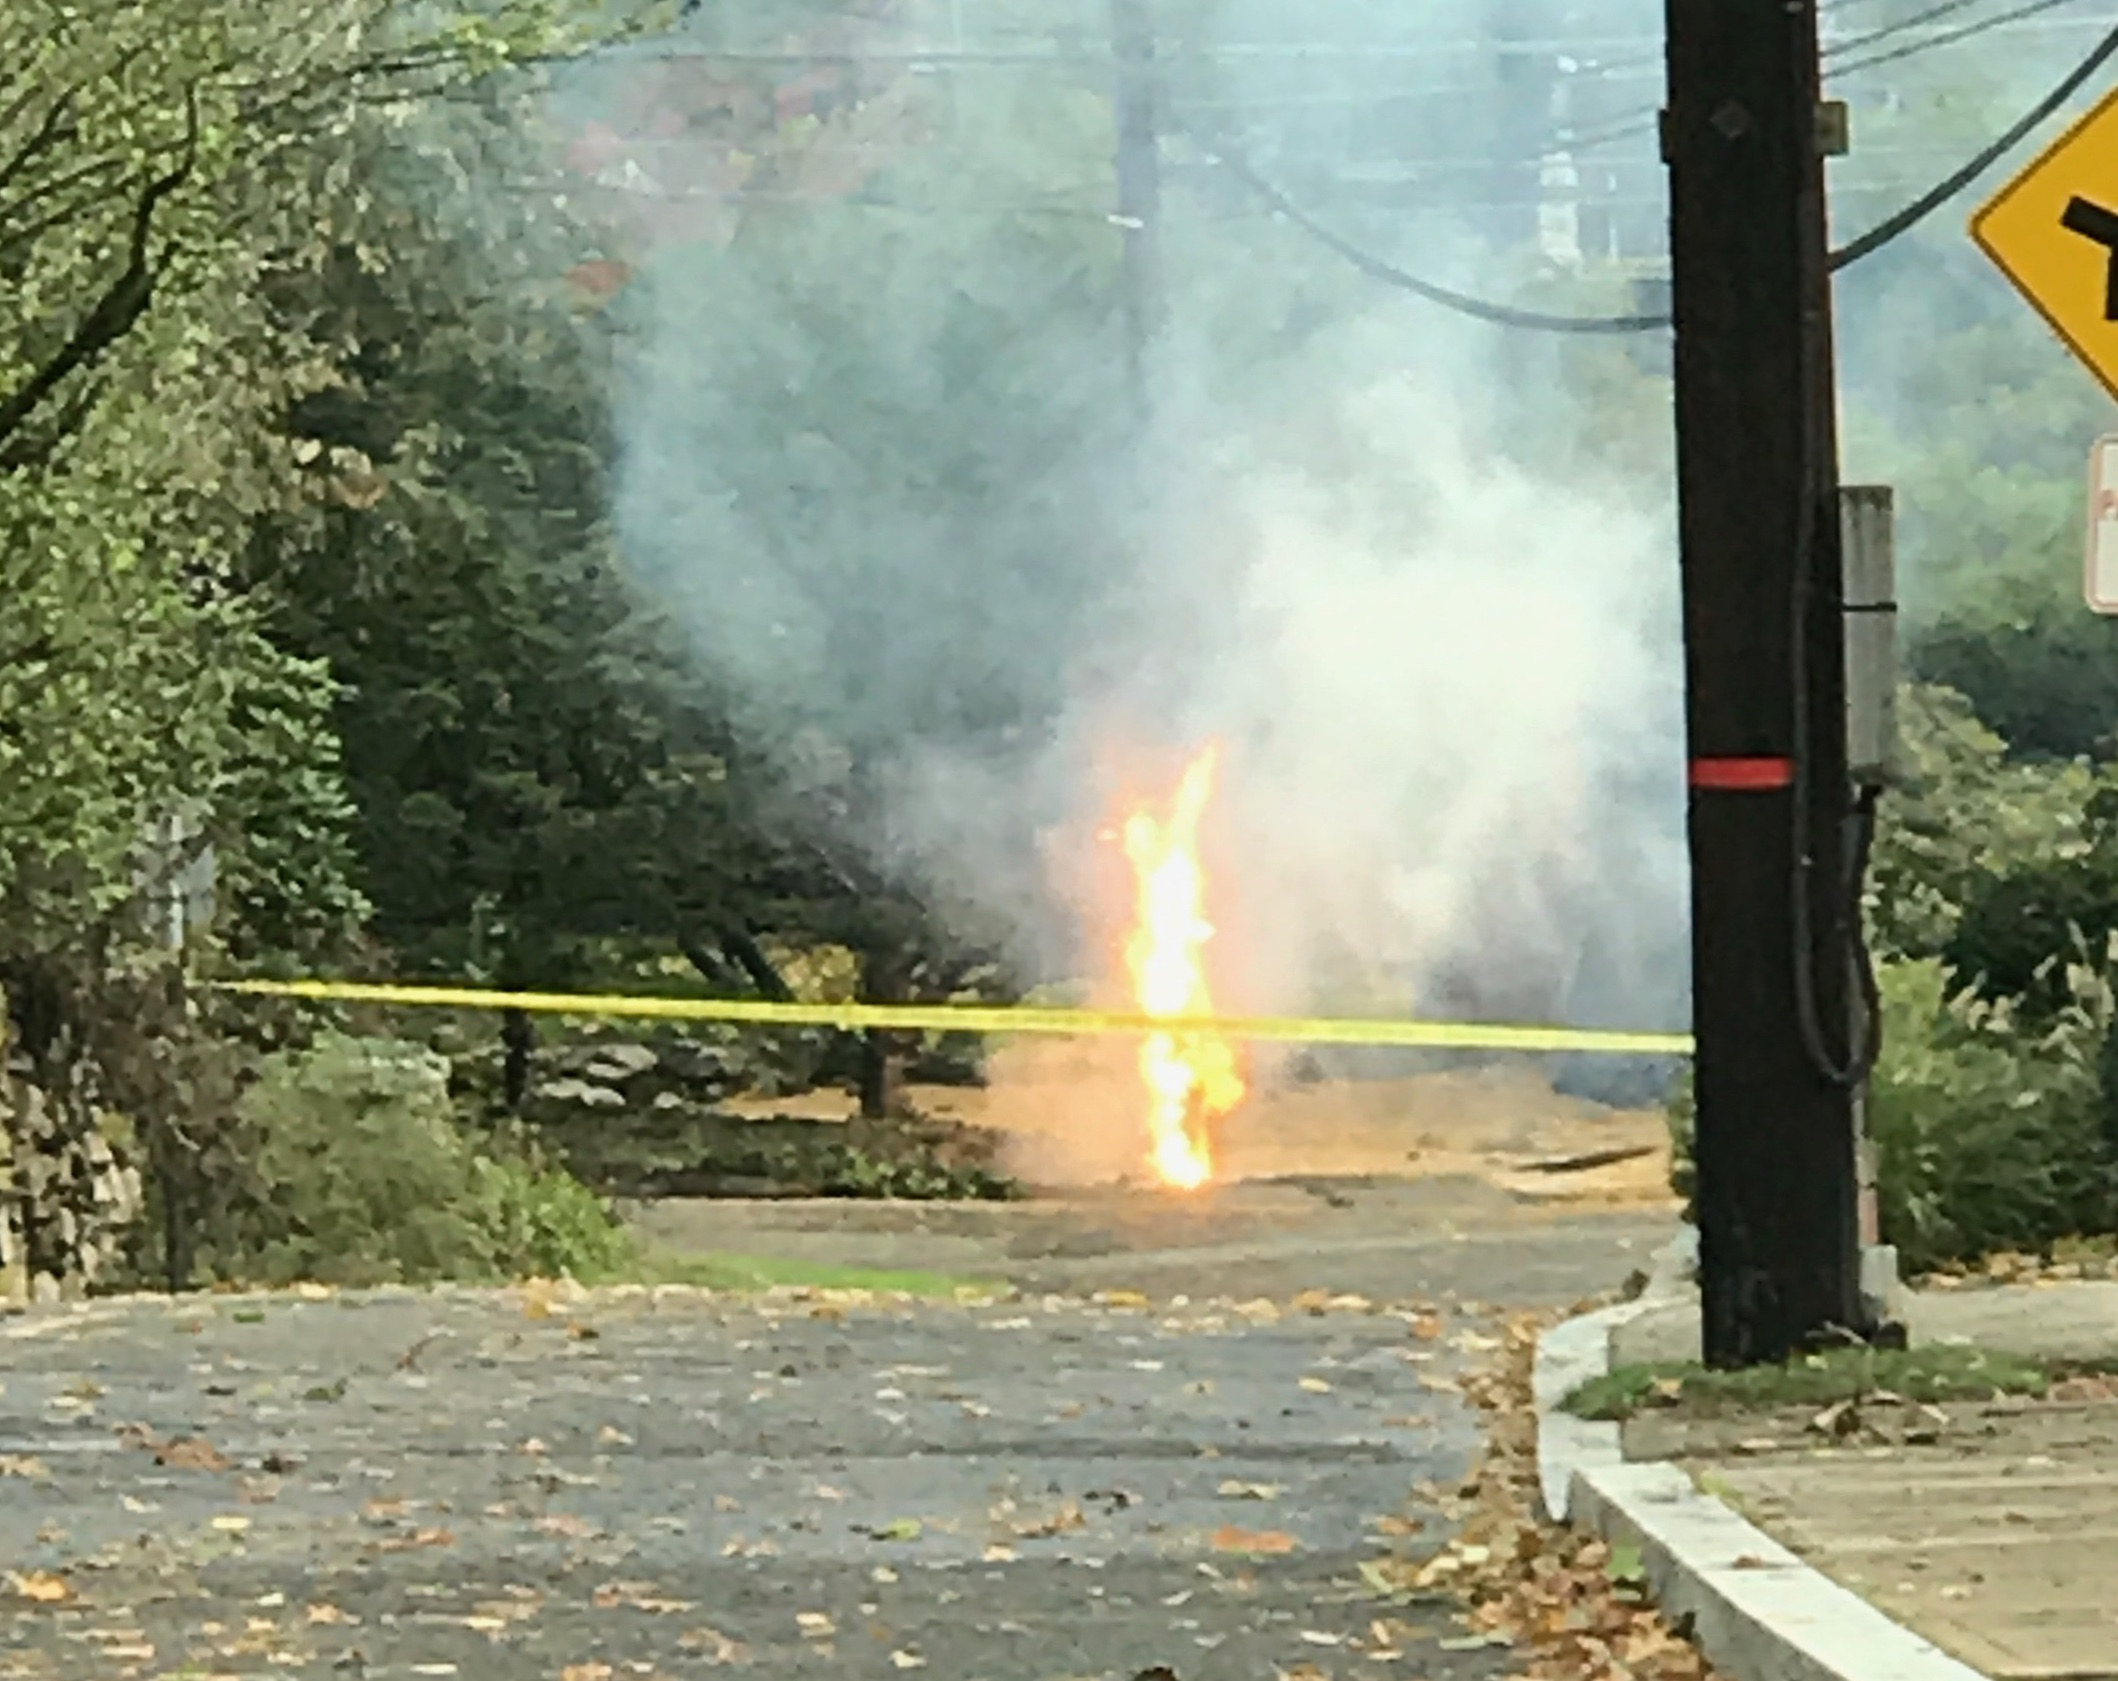 Quarter of New Canaan without power